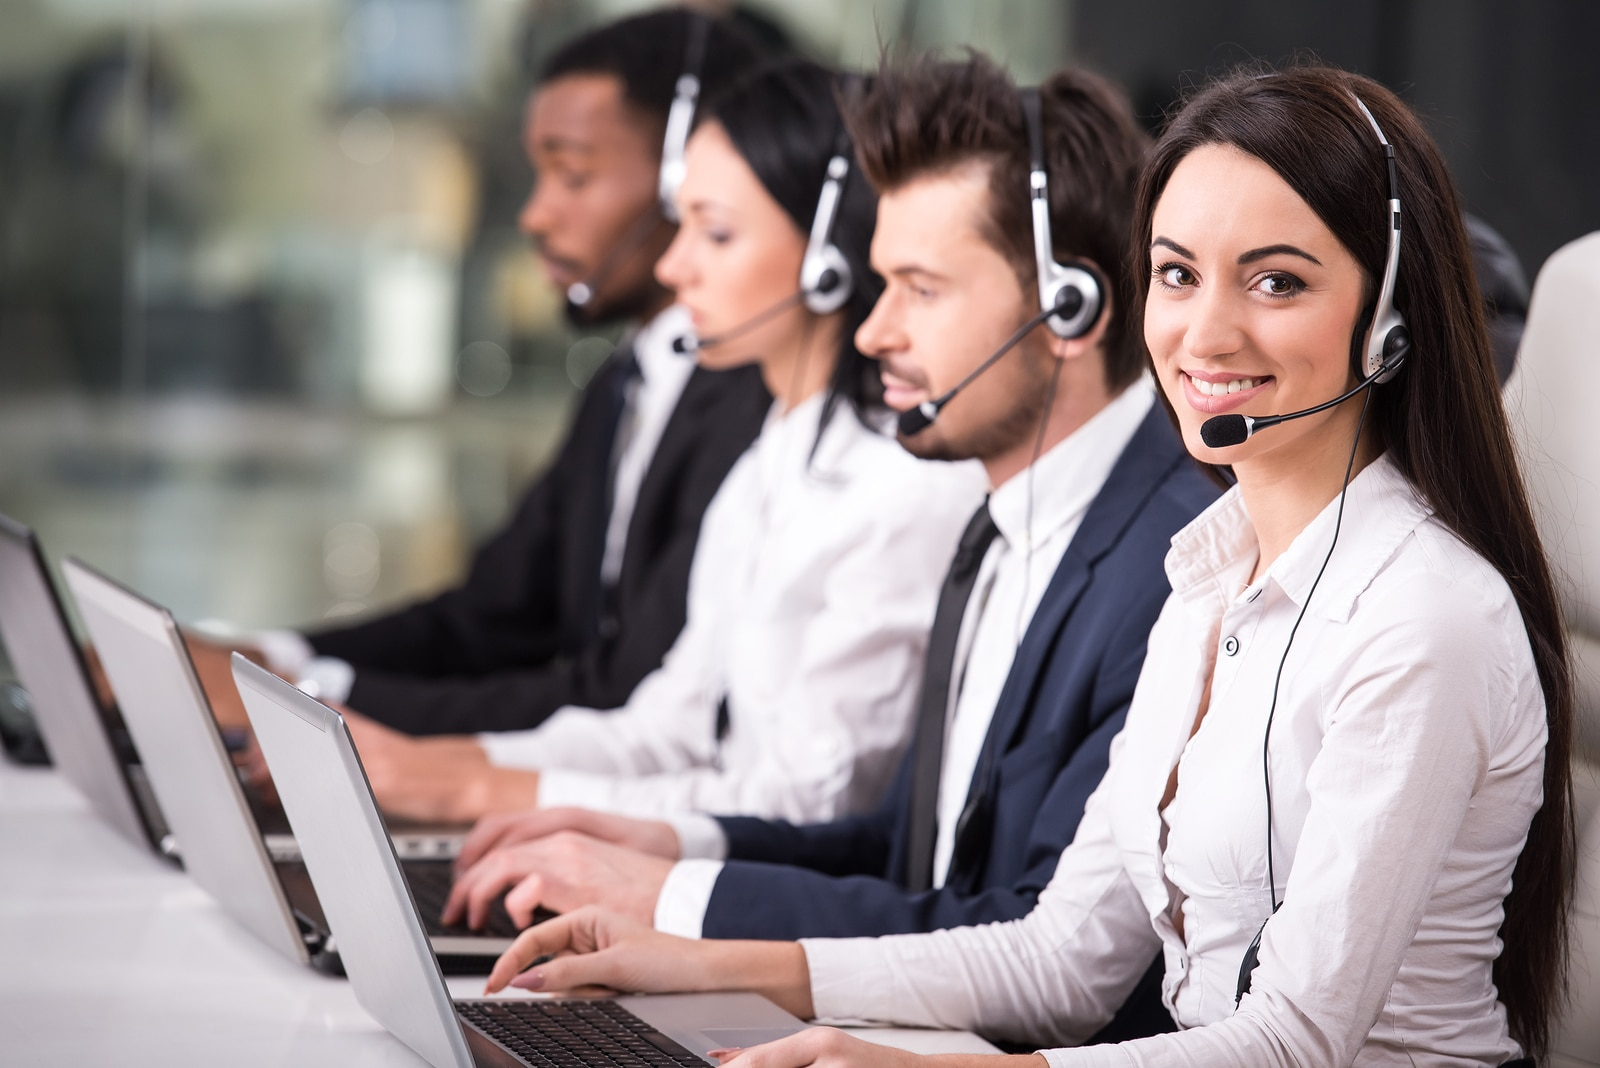 IT technicians in a call center